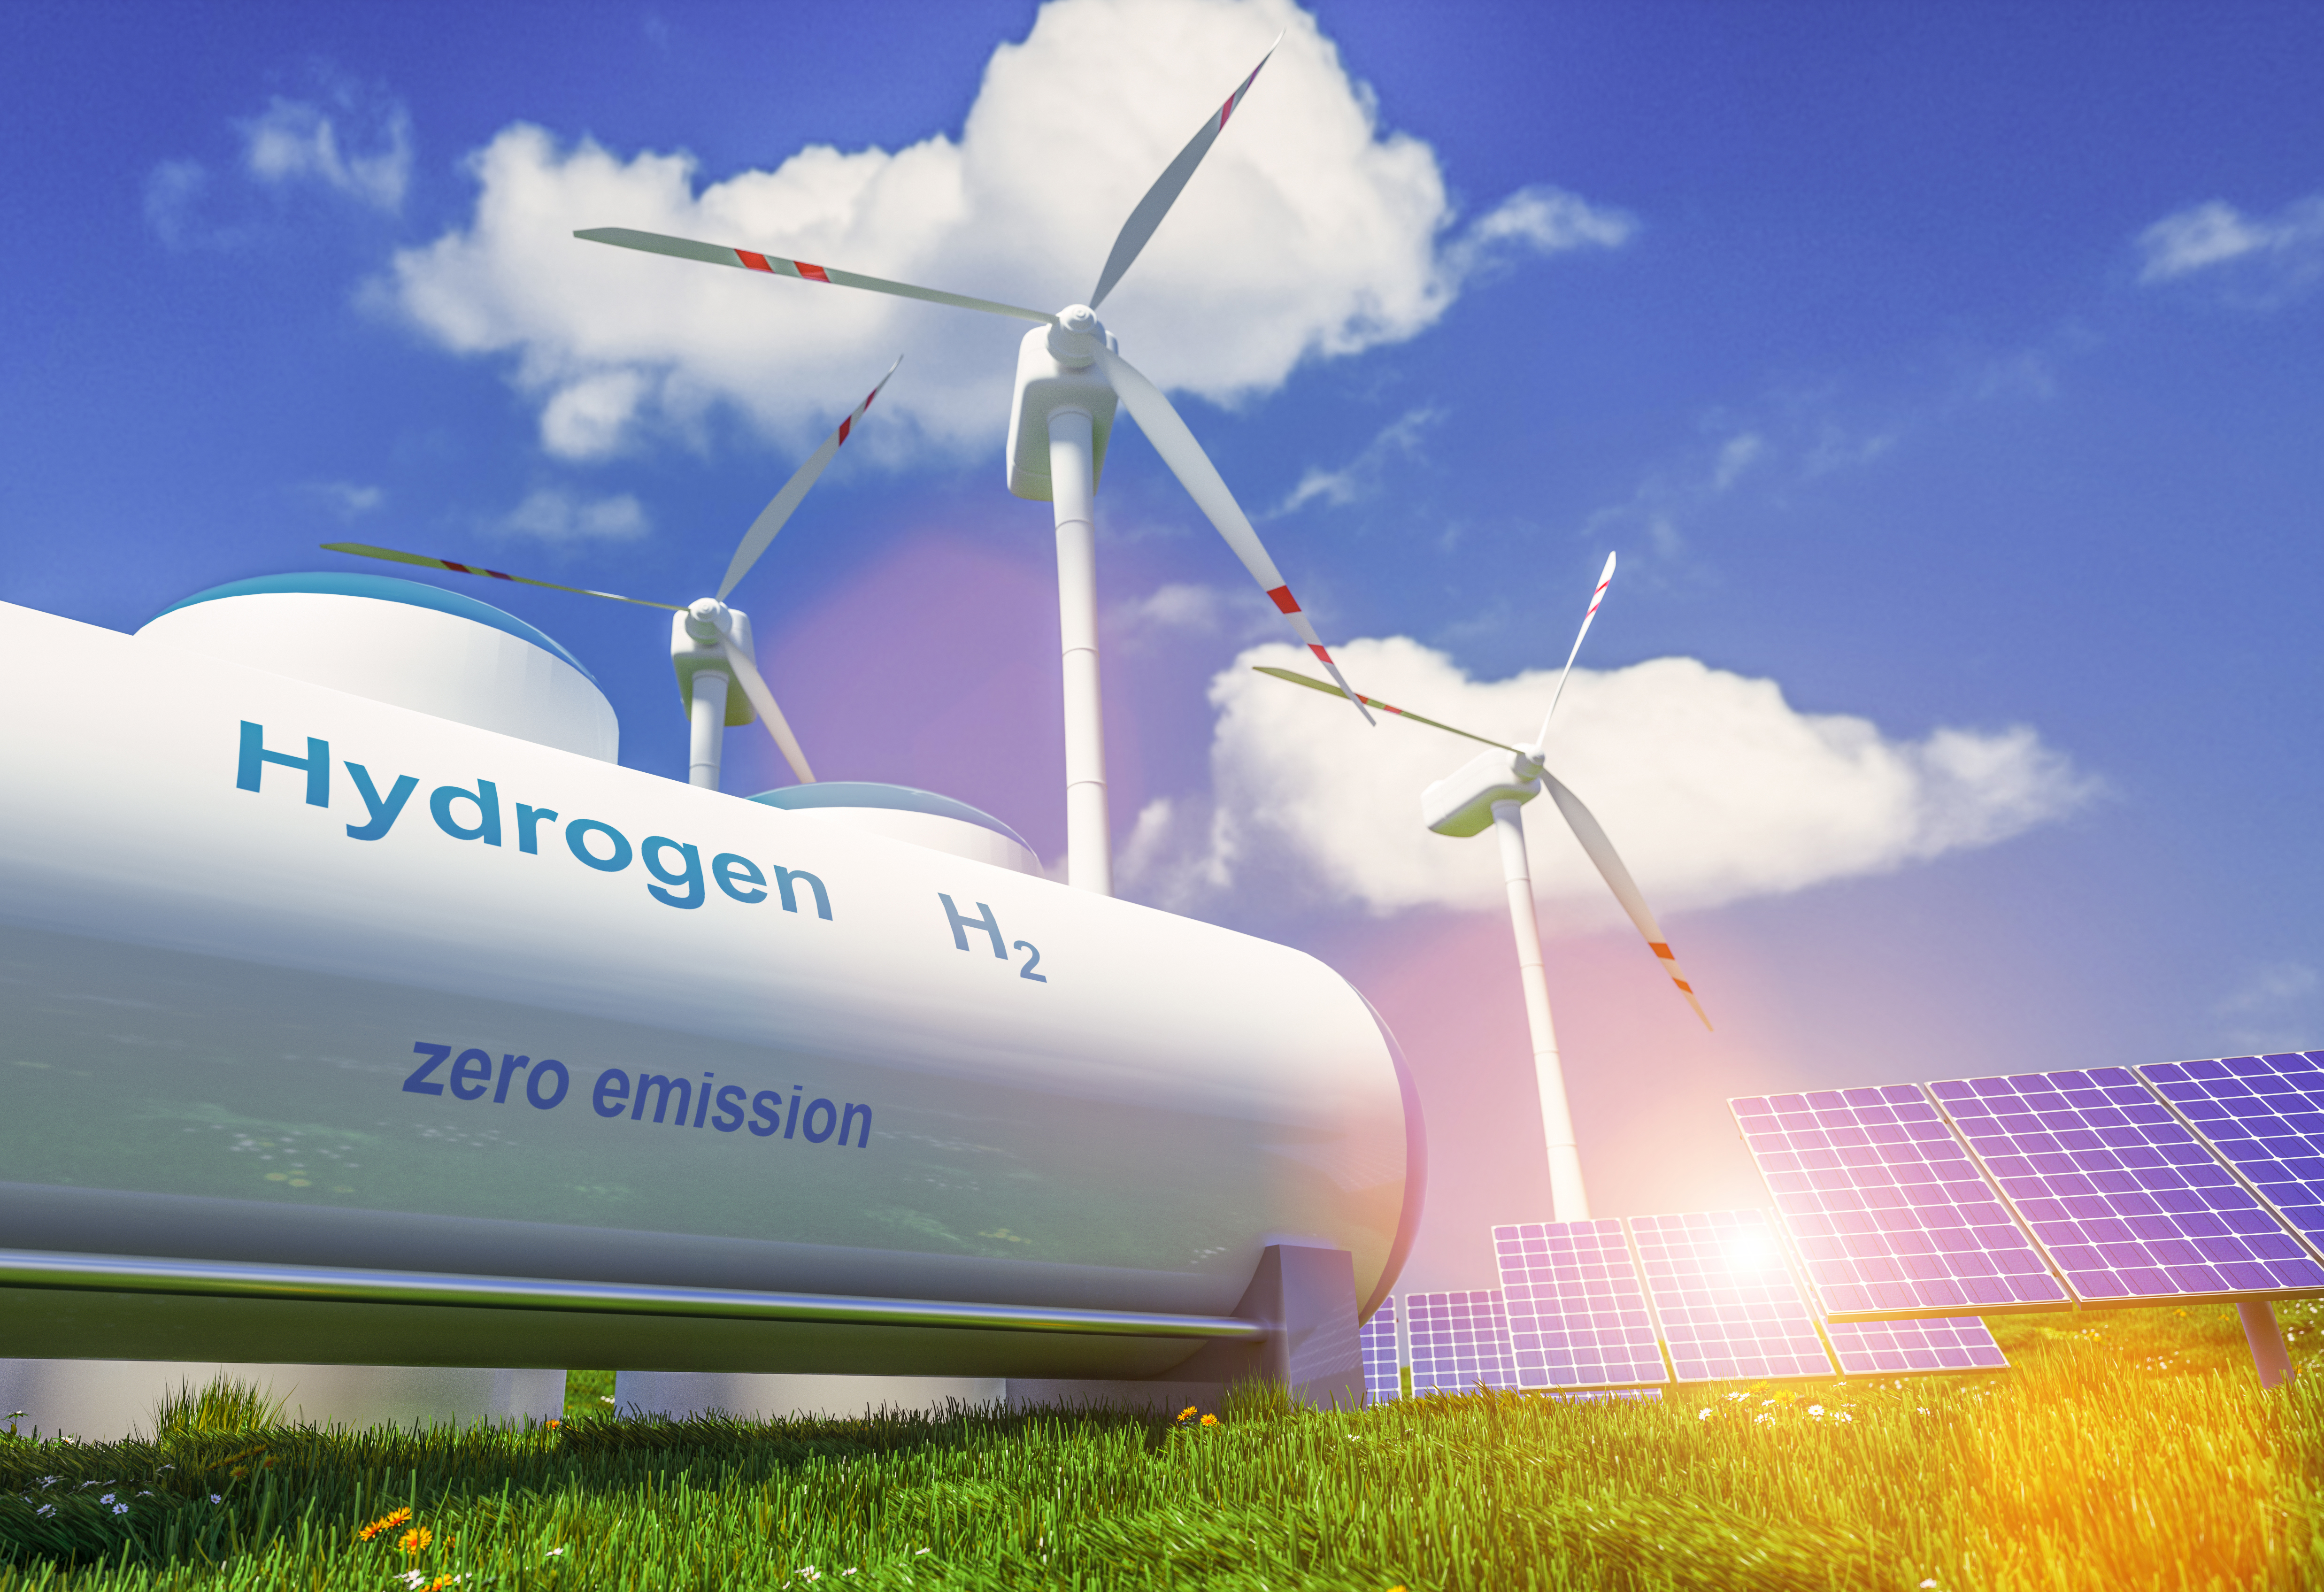 Green hydrogen: opportunities for suppliers